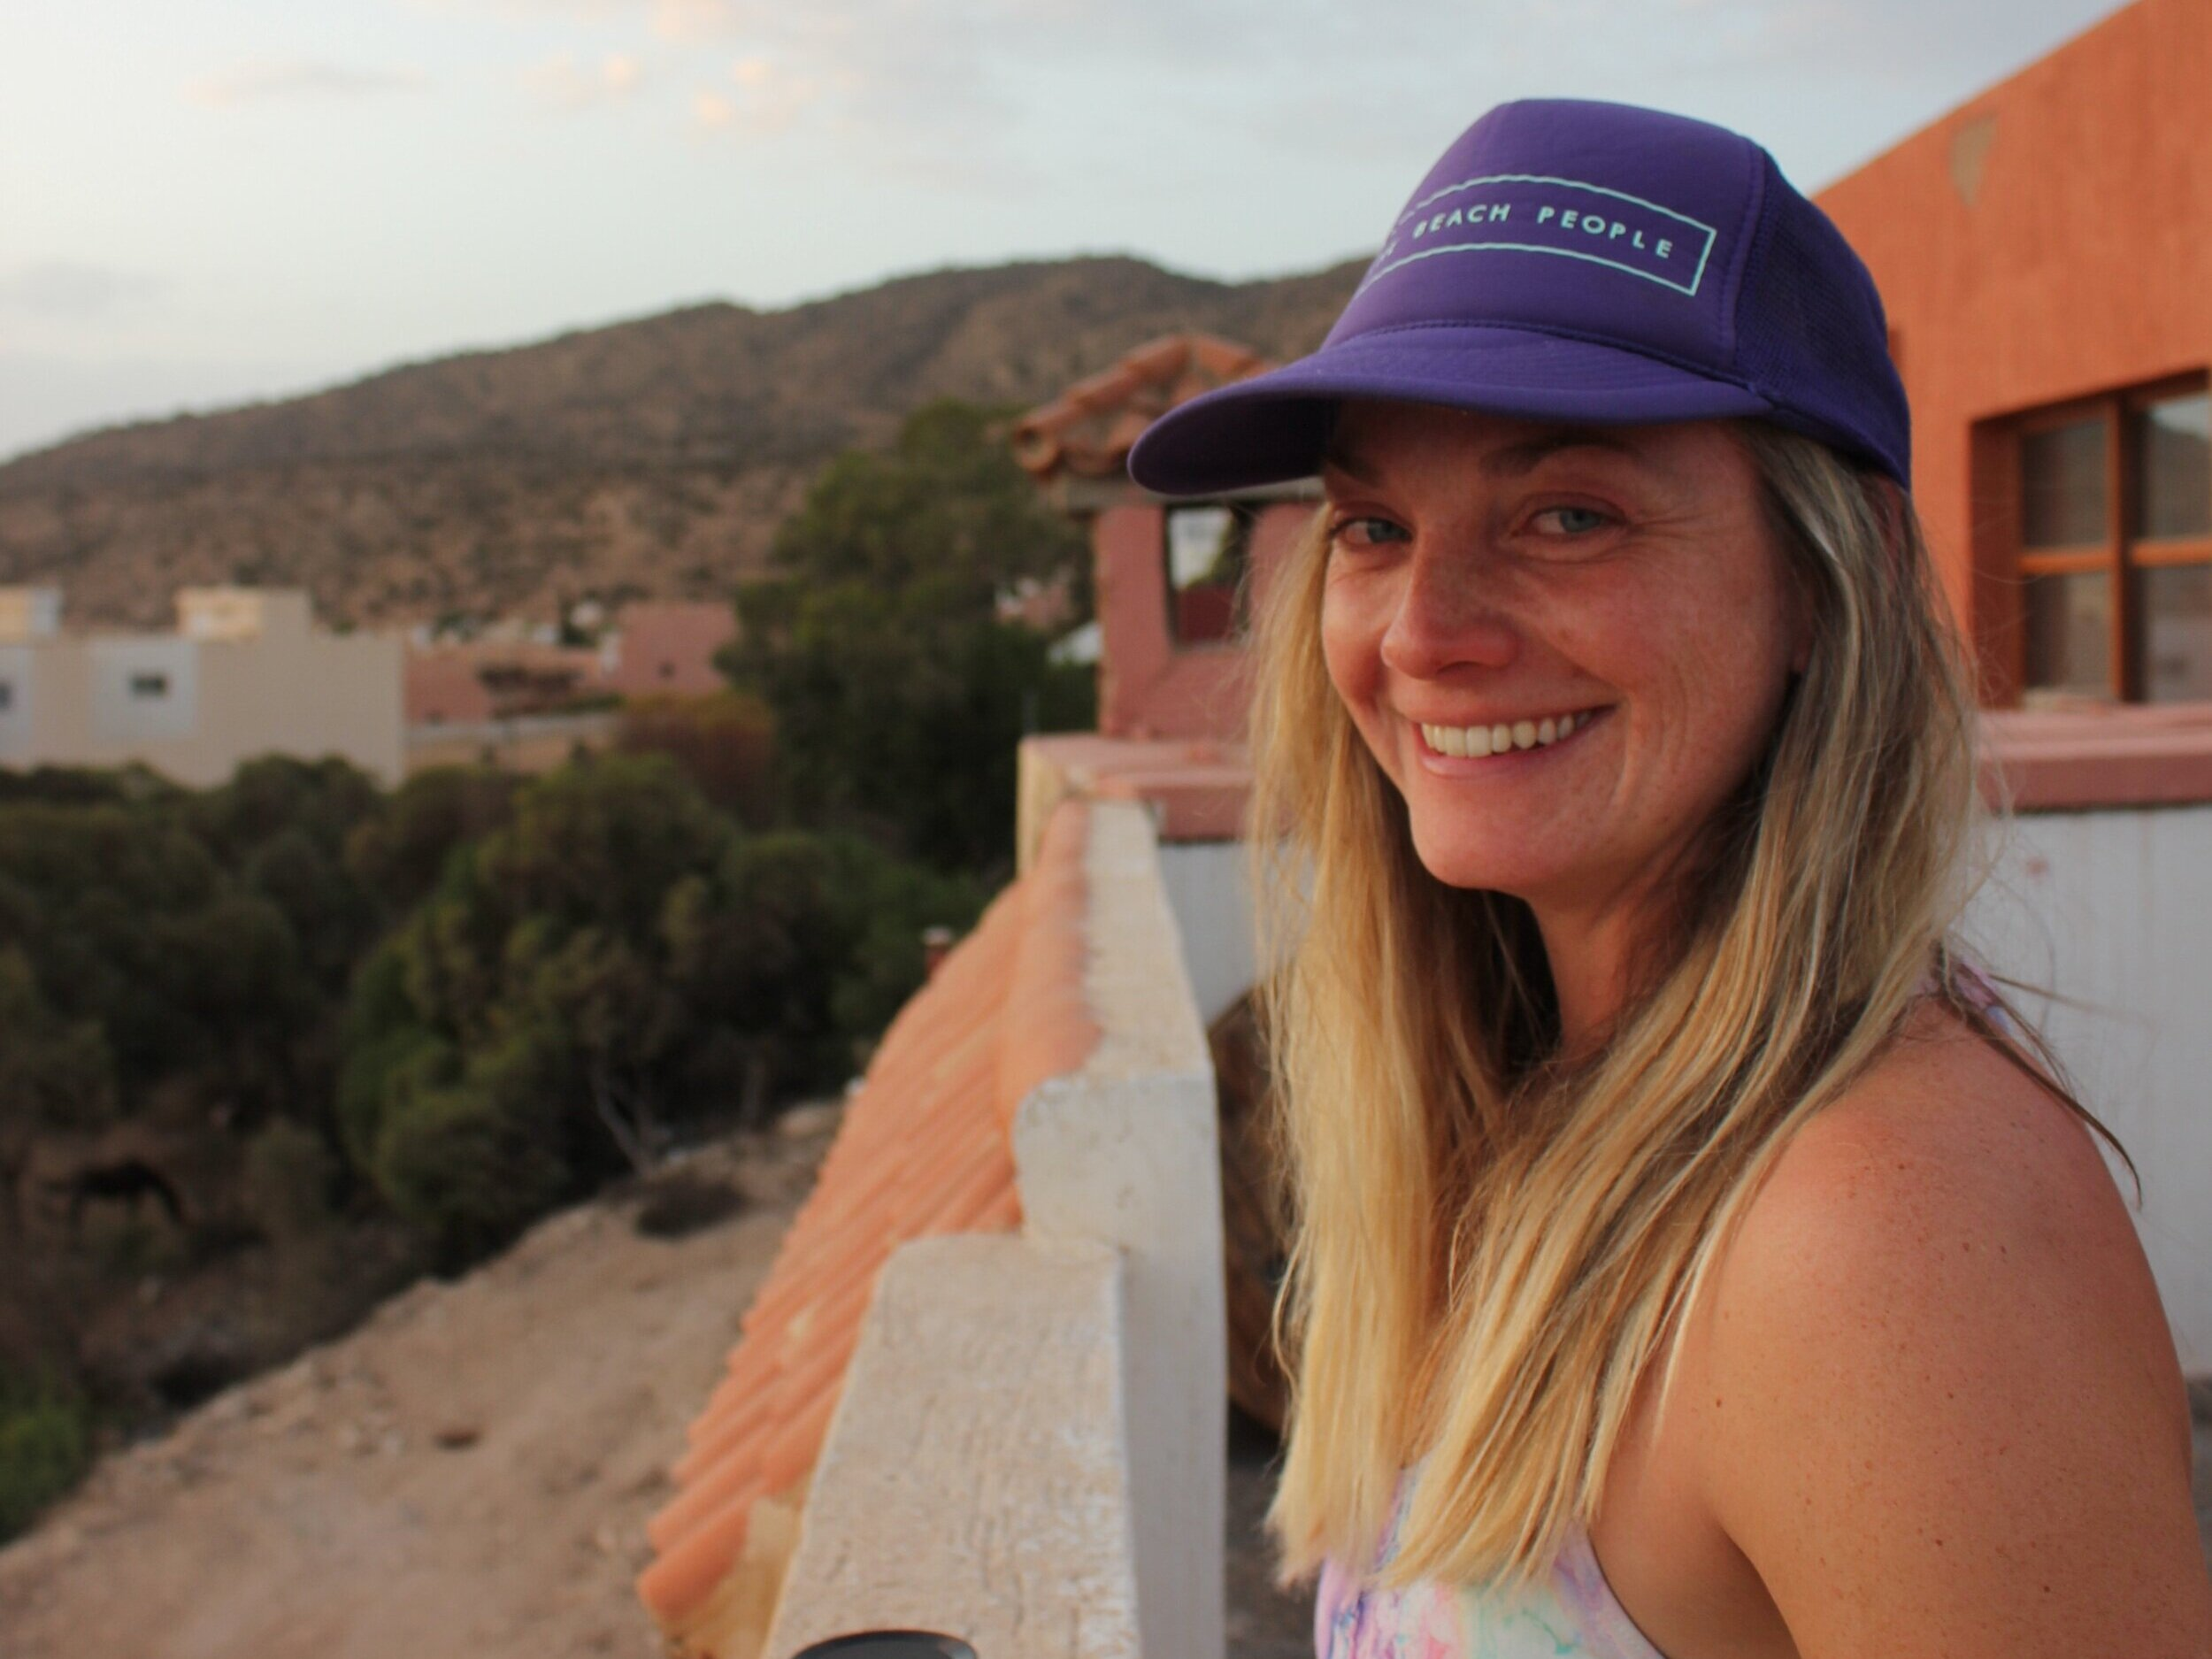 """CATHERINE FROM HER GLOBAL BRAND   """"YOGA WITH CATHERINE""""  , RUNS HER OWN INTERNATIONAL   YOGA RETREATS    BUSINESS.  CATHERINE ALSO OFFERS MENTORSHIP AND LIFE COACHING PACKAGES FOR ENTREPRENEURS AND ASSISTS ON 200HR TRAININGS FOR YOGA TEACHERS."""